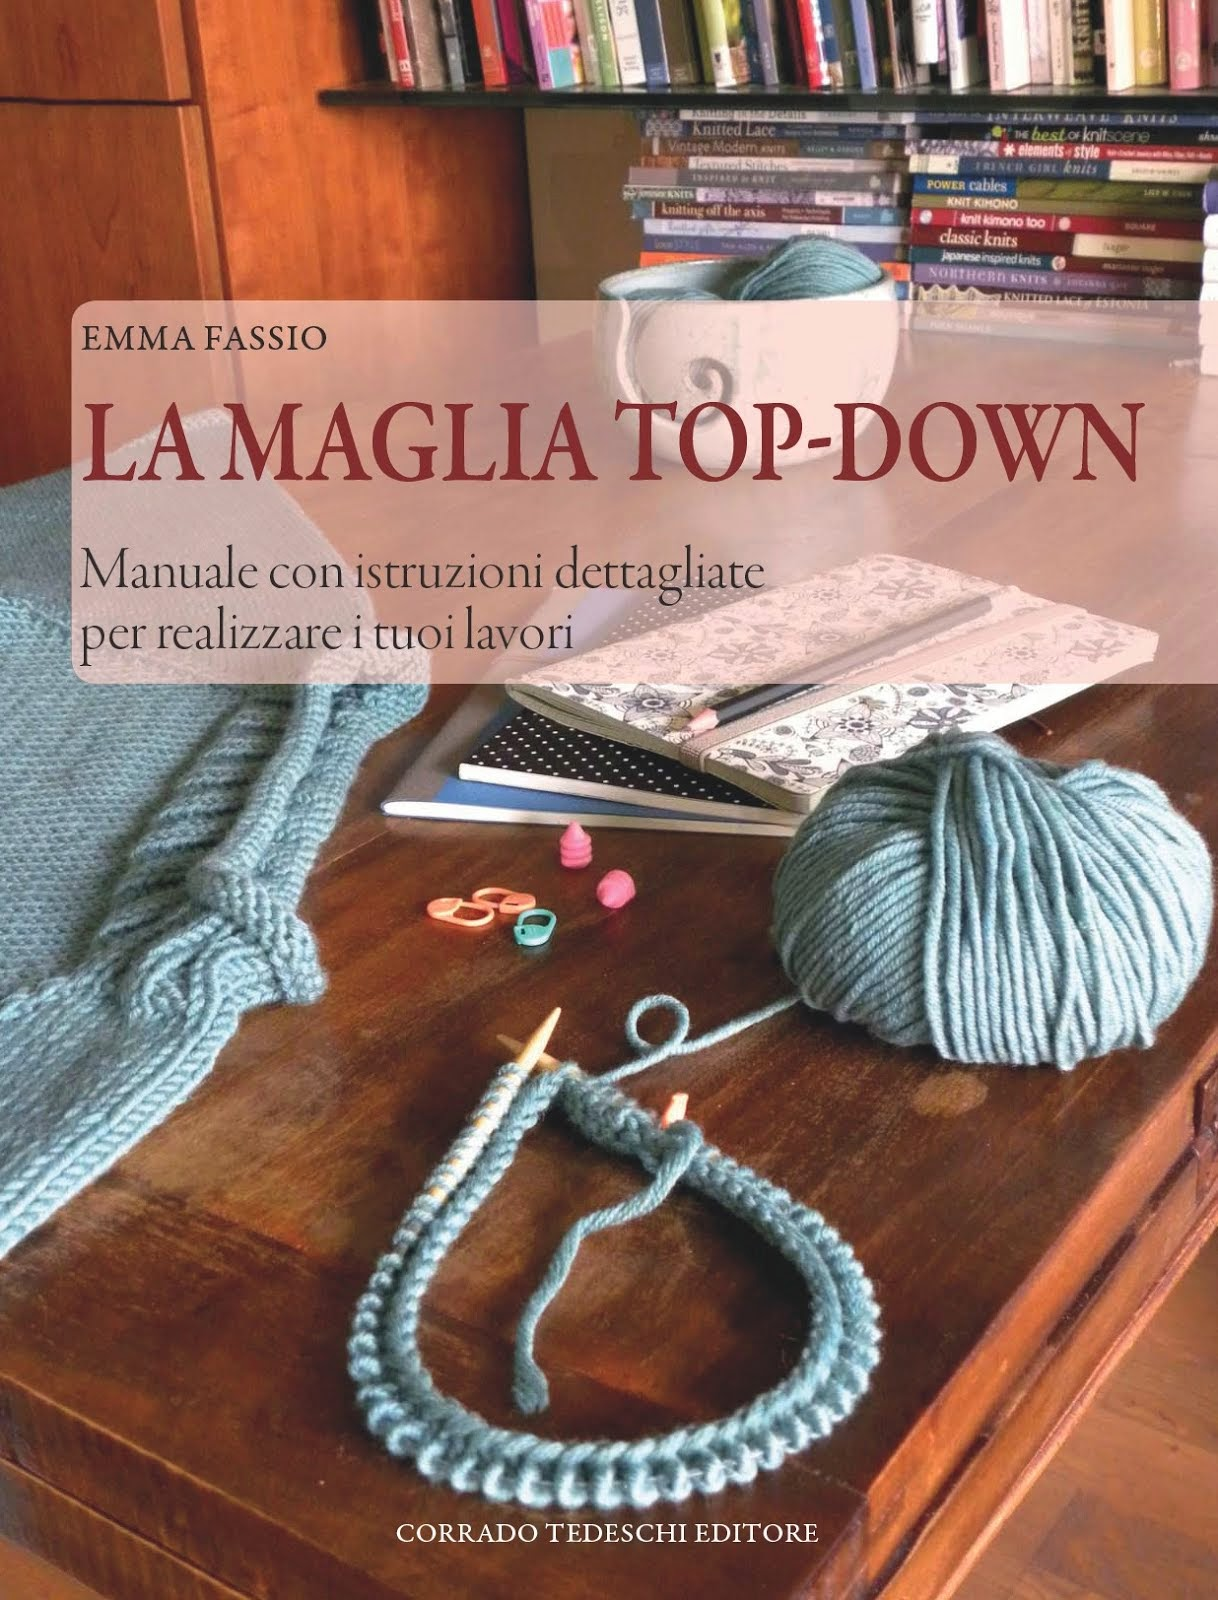 Libro sulla maglia top-down